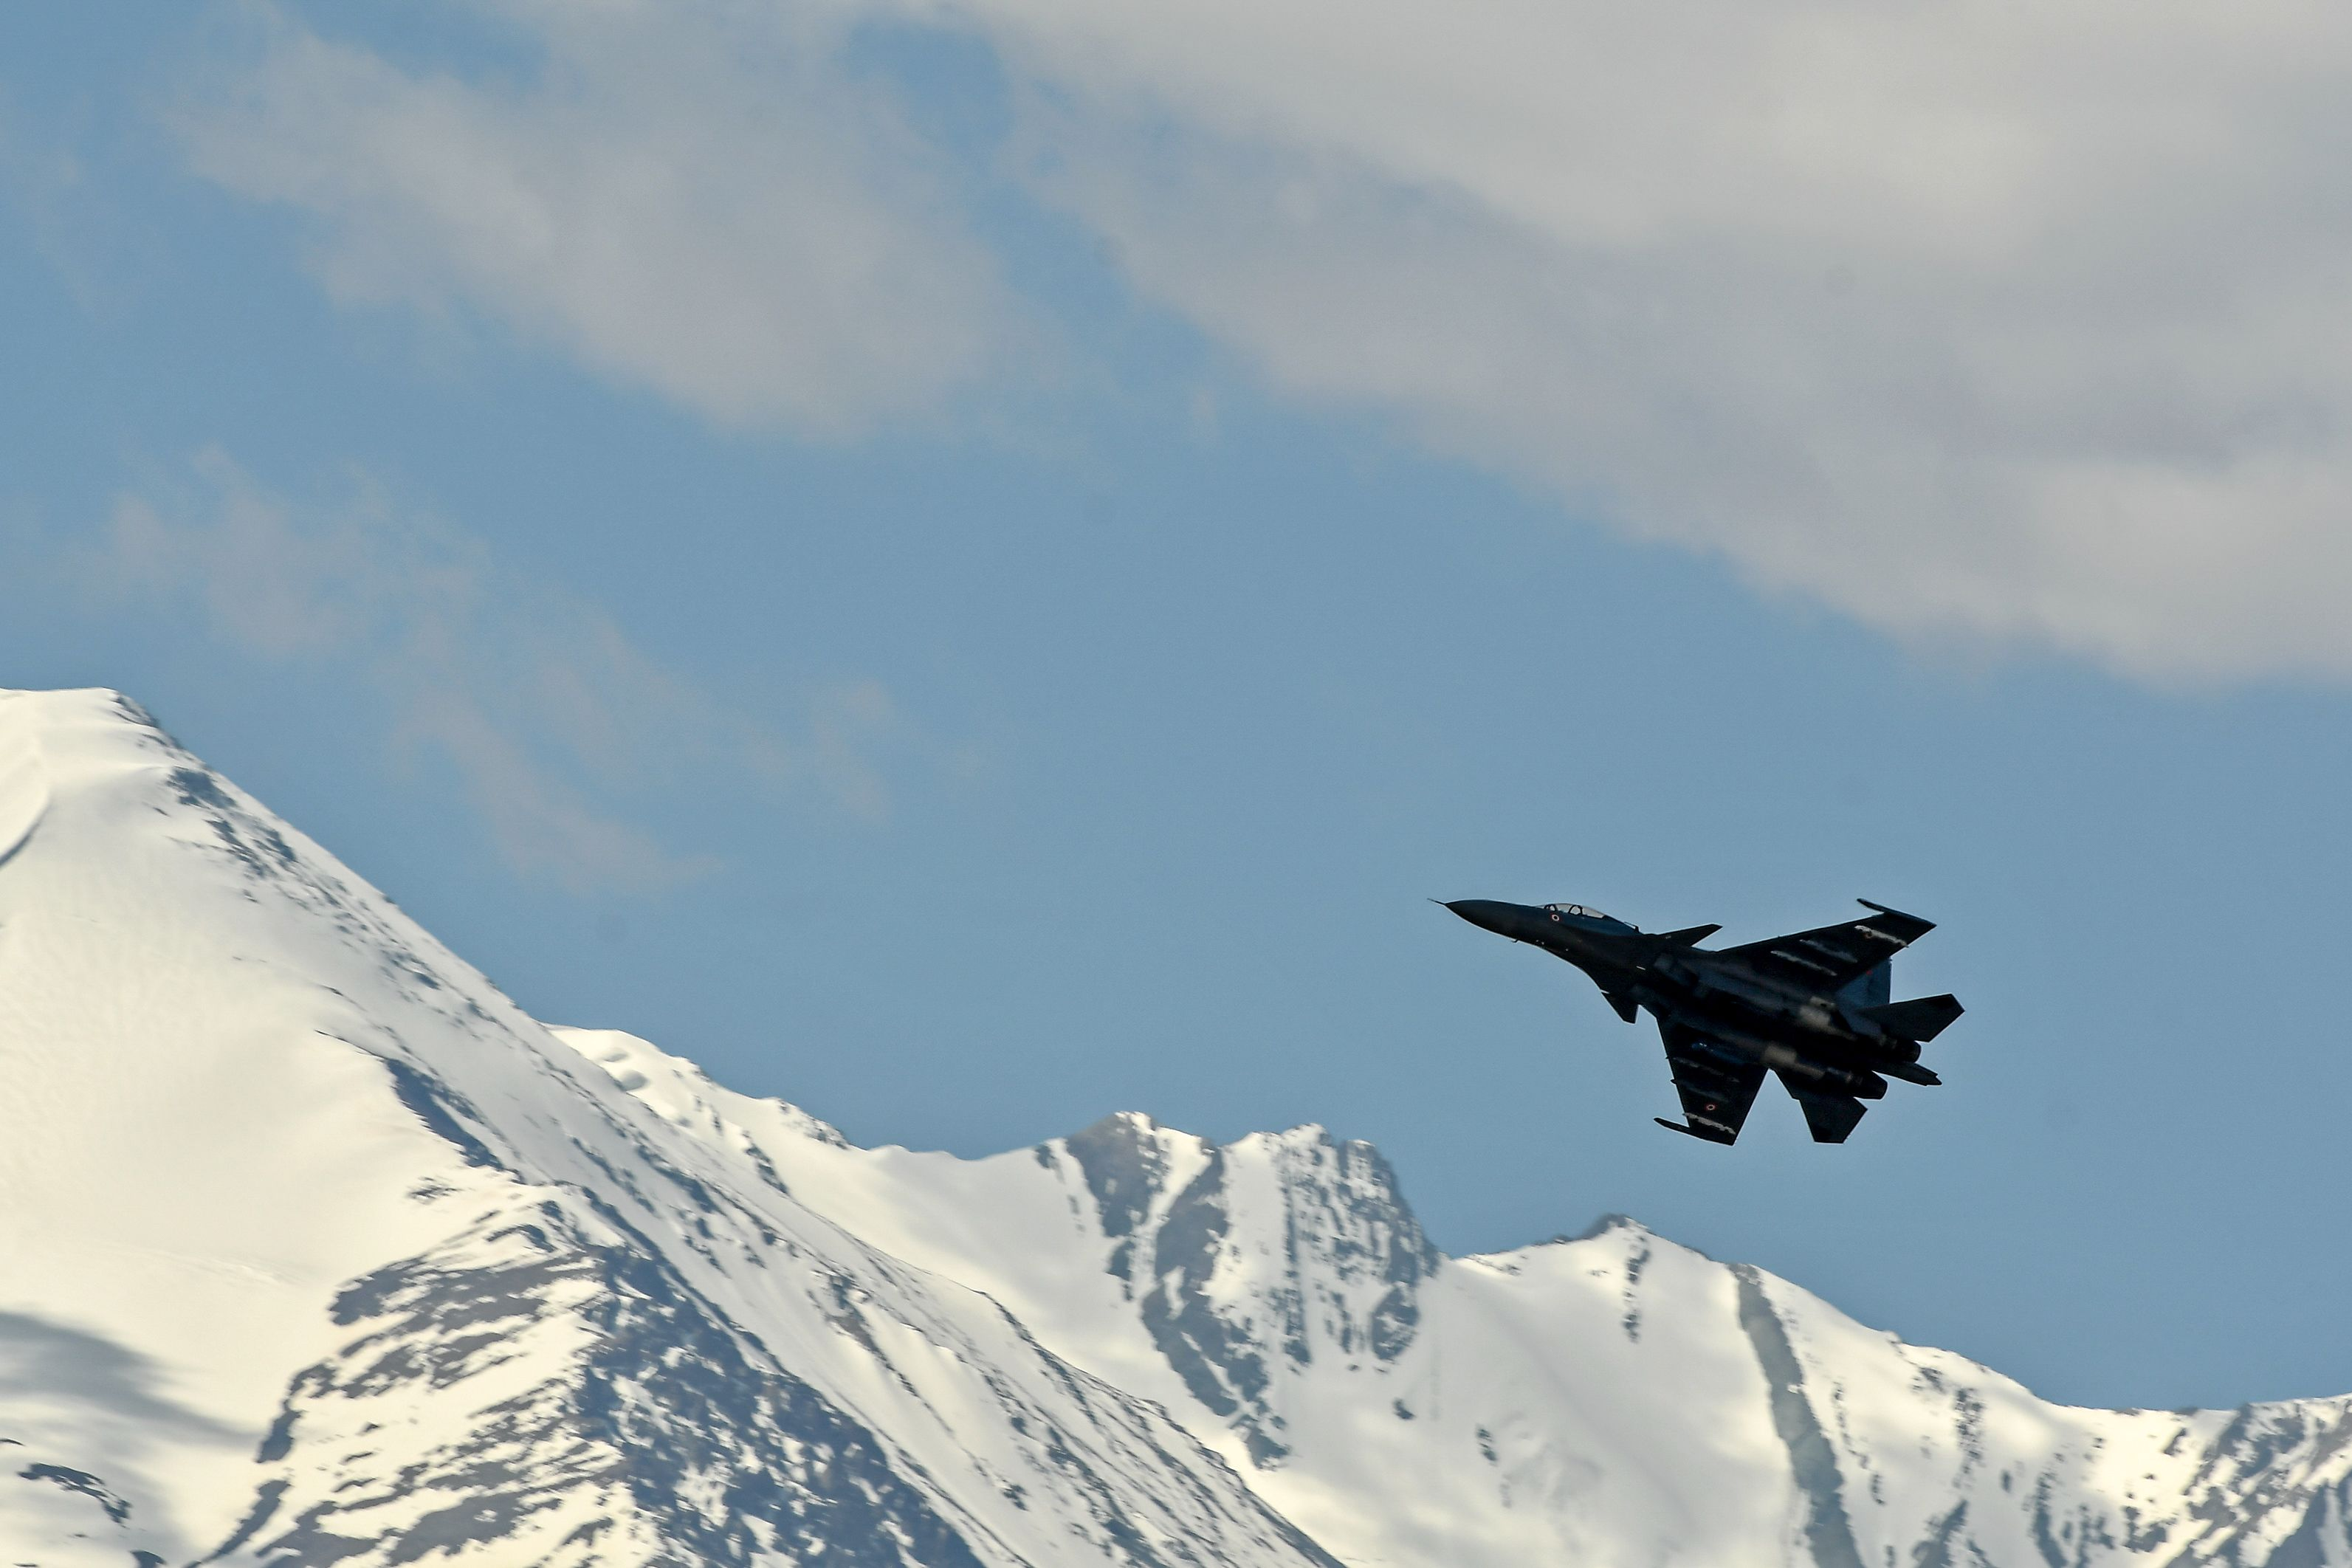 An Indian Air Force aircraft is seen against the backdrop of mountains surrounding Leh, the joint capital of the union territory of Ladakh, on June 27, 2020. (TAUSEEF MUSTAFA/AFP via Getty Images)